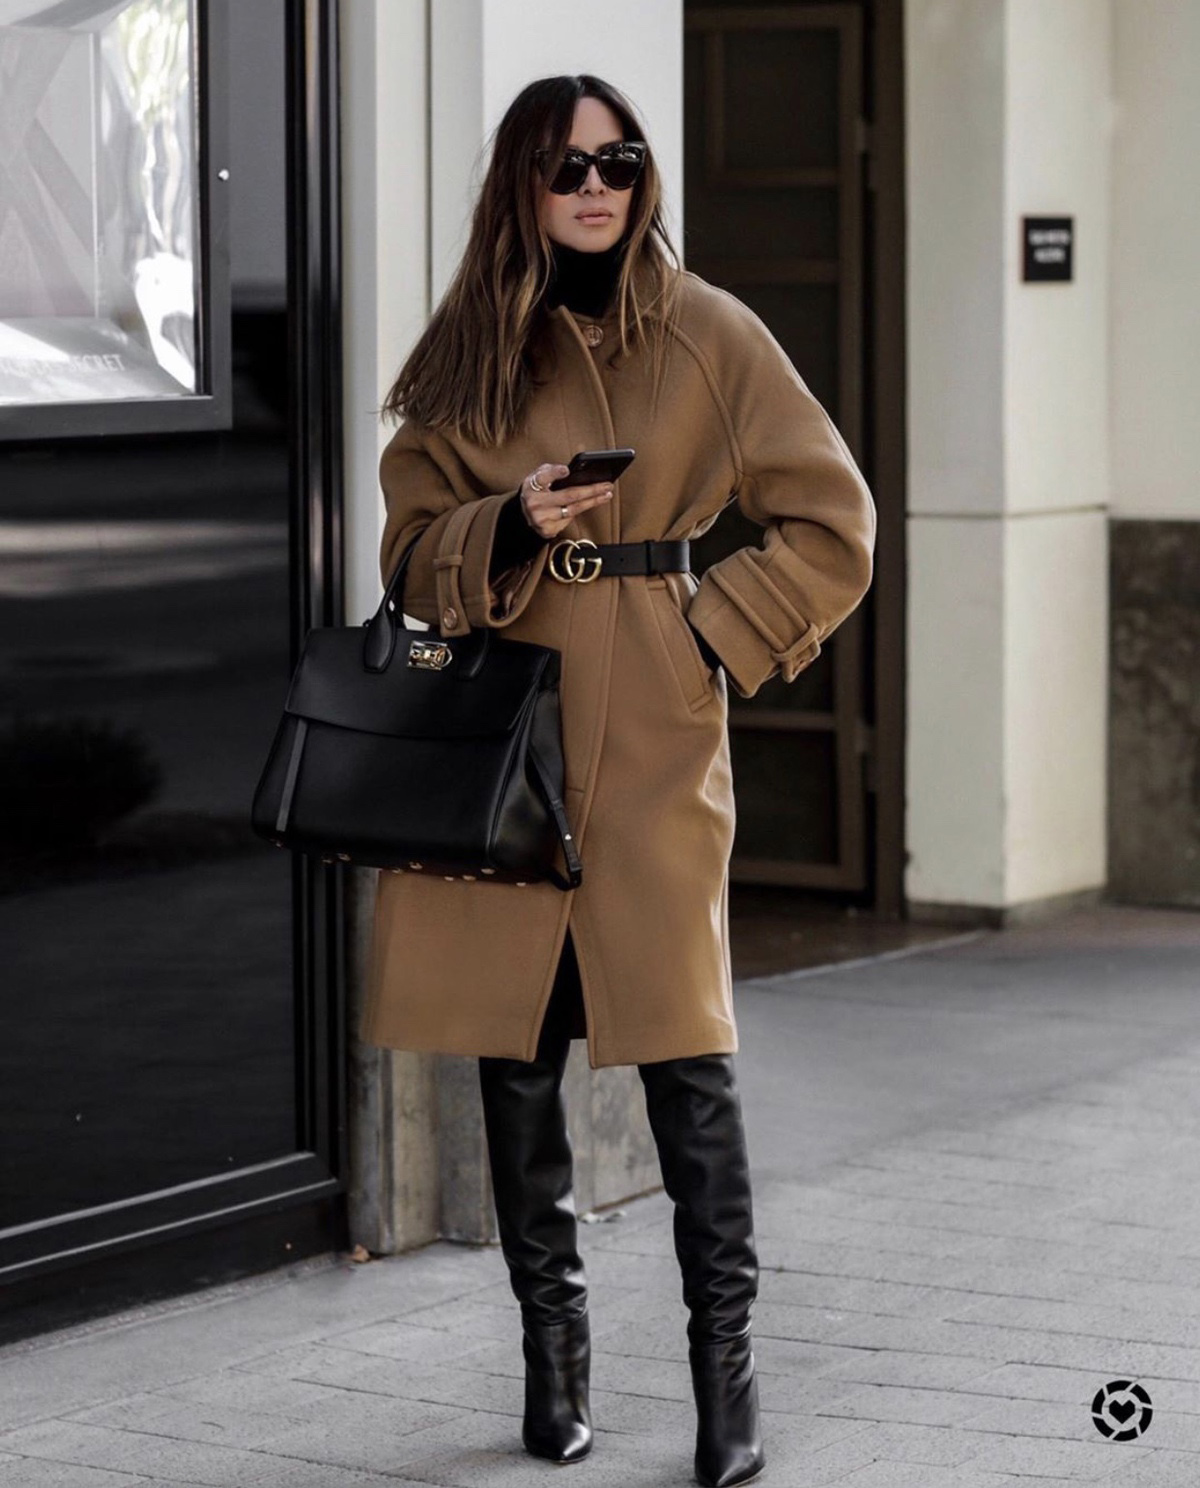 Coats Every Woman Should Own, belted camel coat, fall outfit inspiration by lolario style | lolariostyle.com